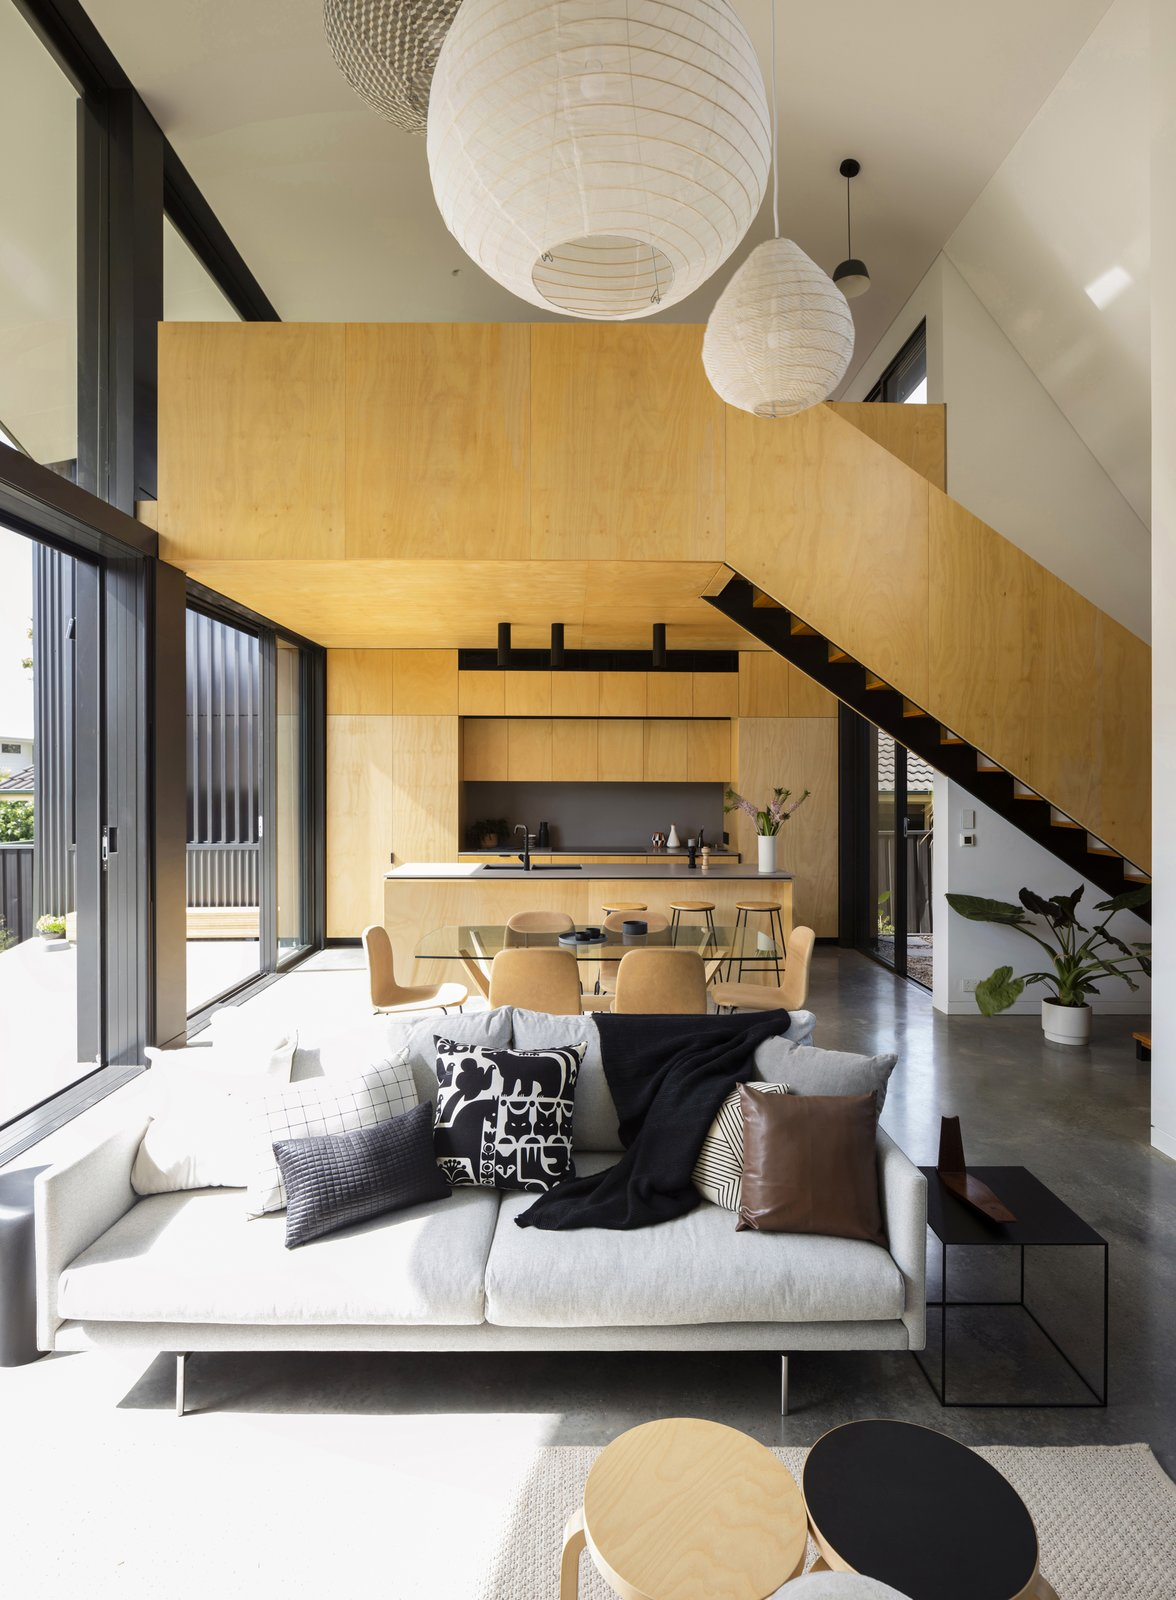 Living areas with two smaller rooms crafted at one end of the pavilion volume - a ground level kitchen and an upper floor sitting room which is flexibly adapted for use as a bedroom and study